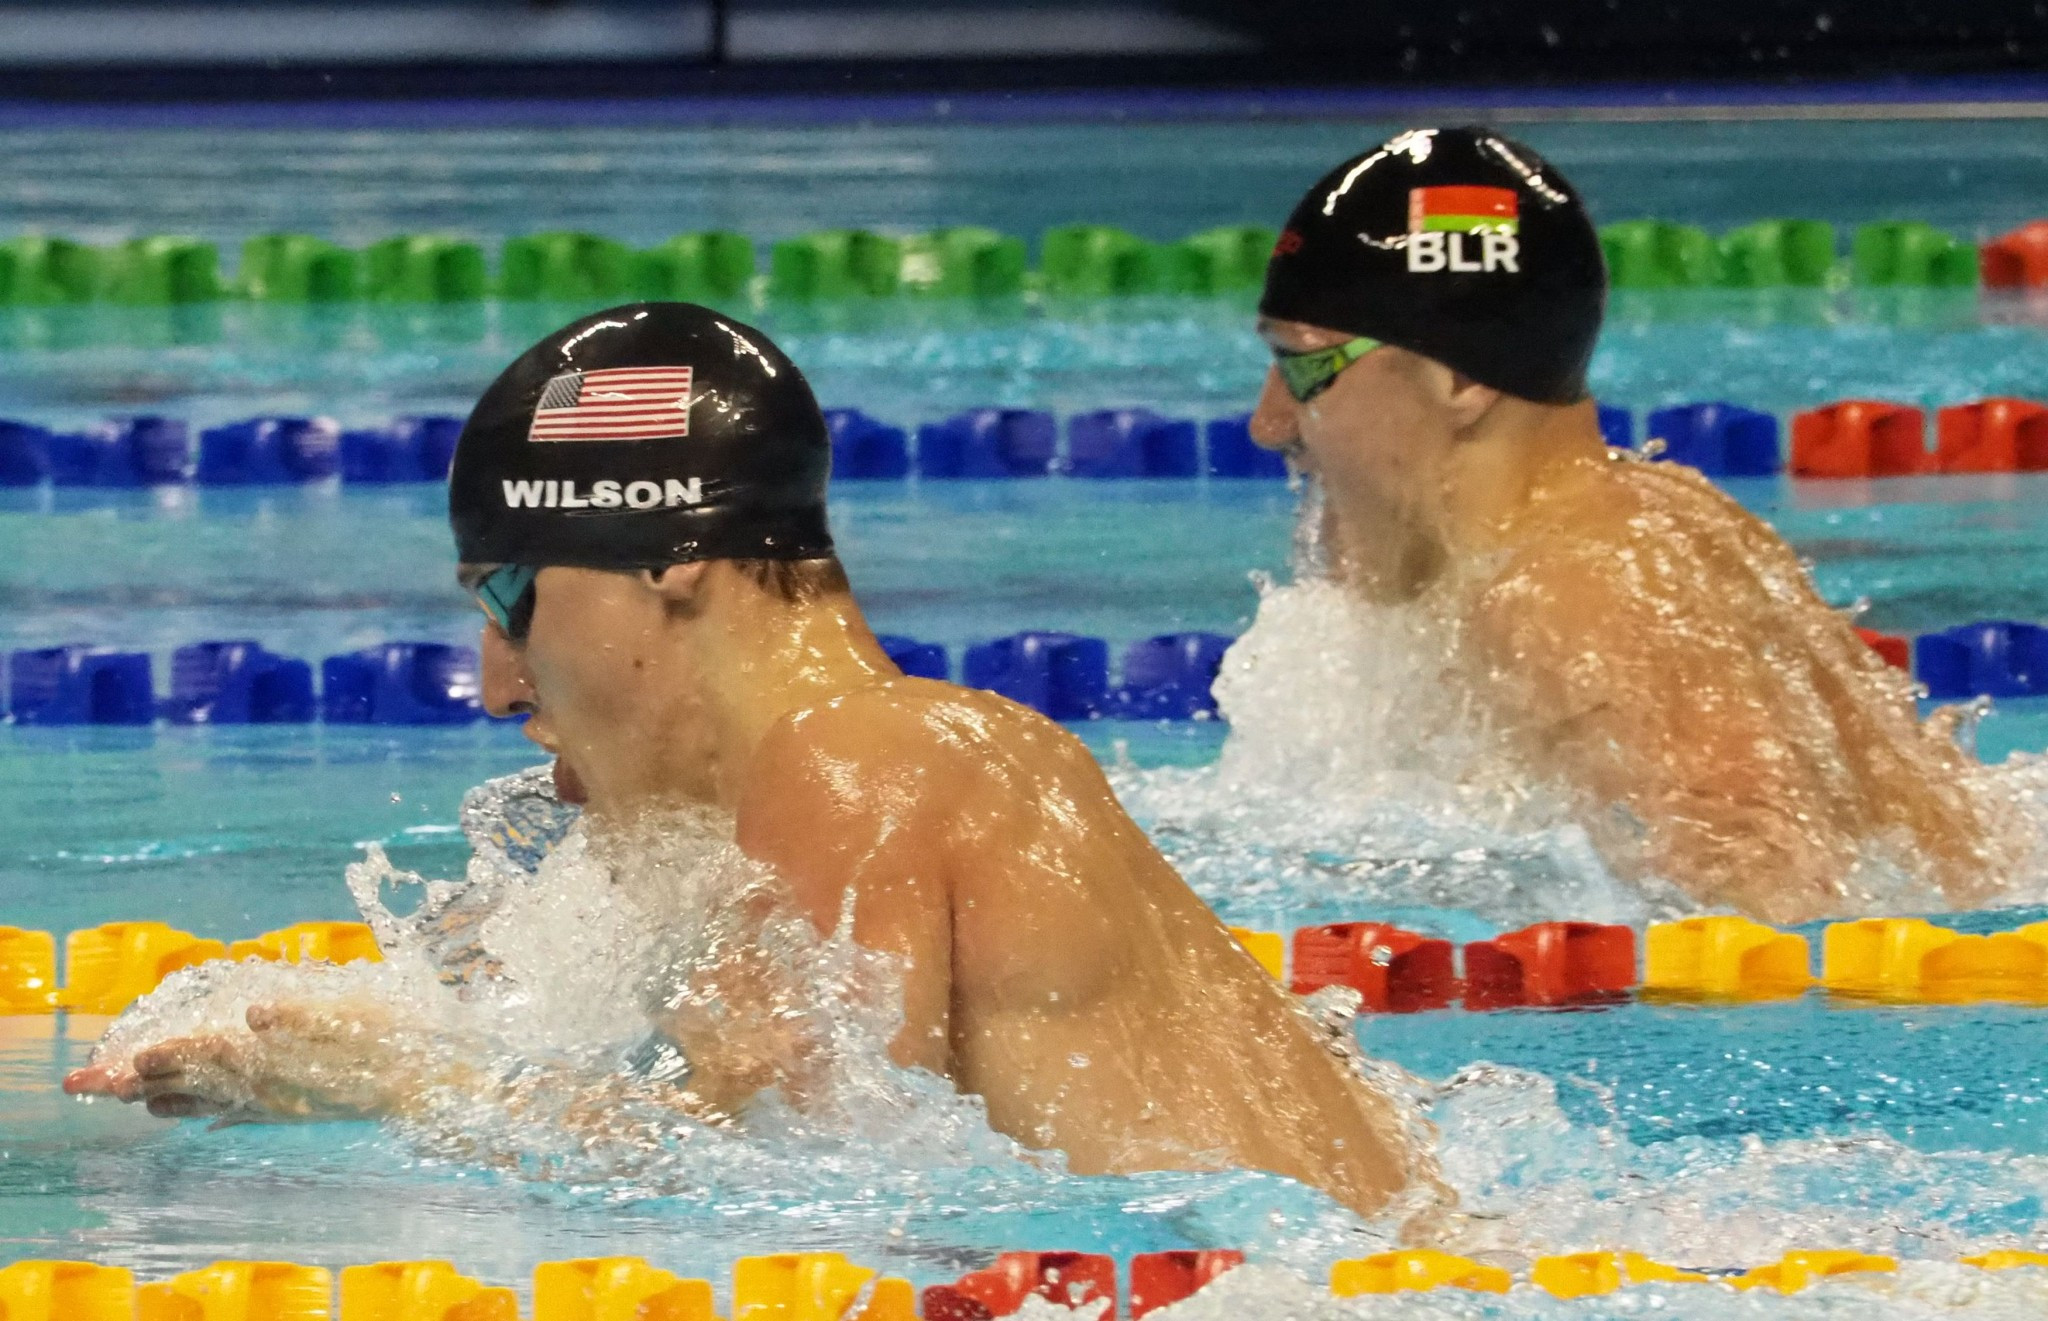 Andrew Wilson, left, and Ilya Shymanovich, right, shared the men's 100 metres breaststroke title ©Taipei 2017